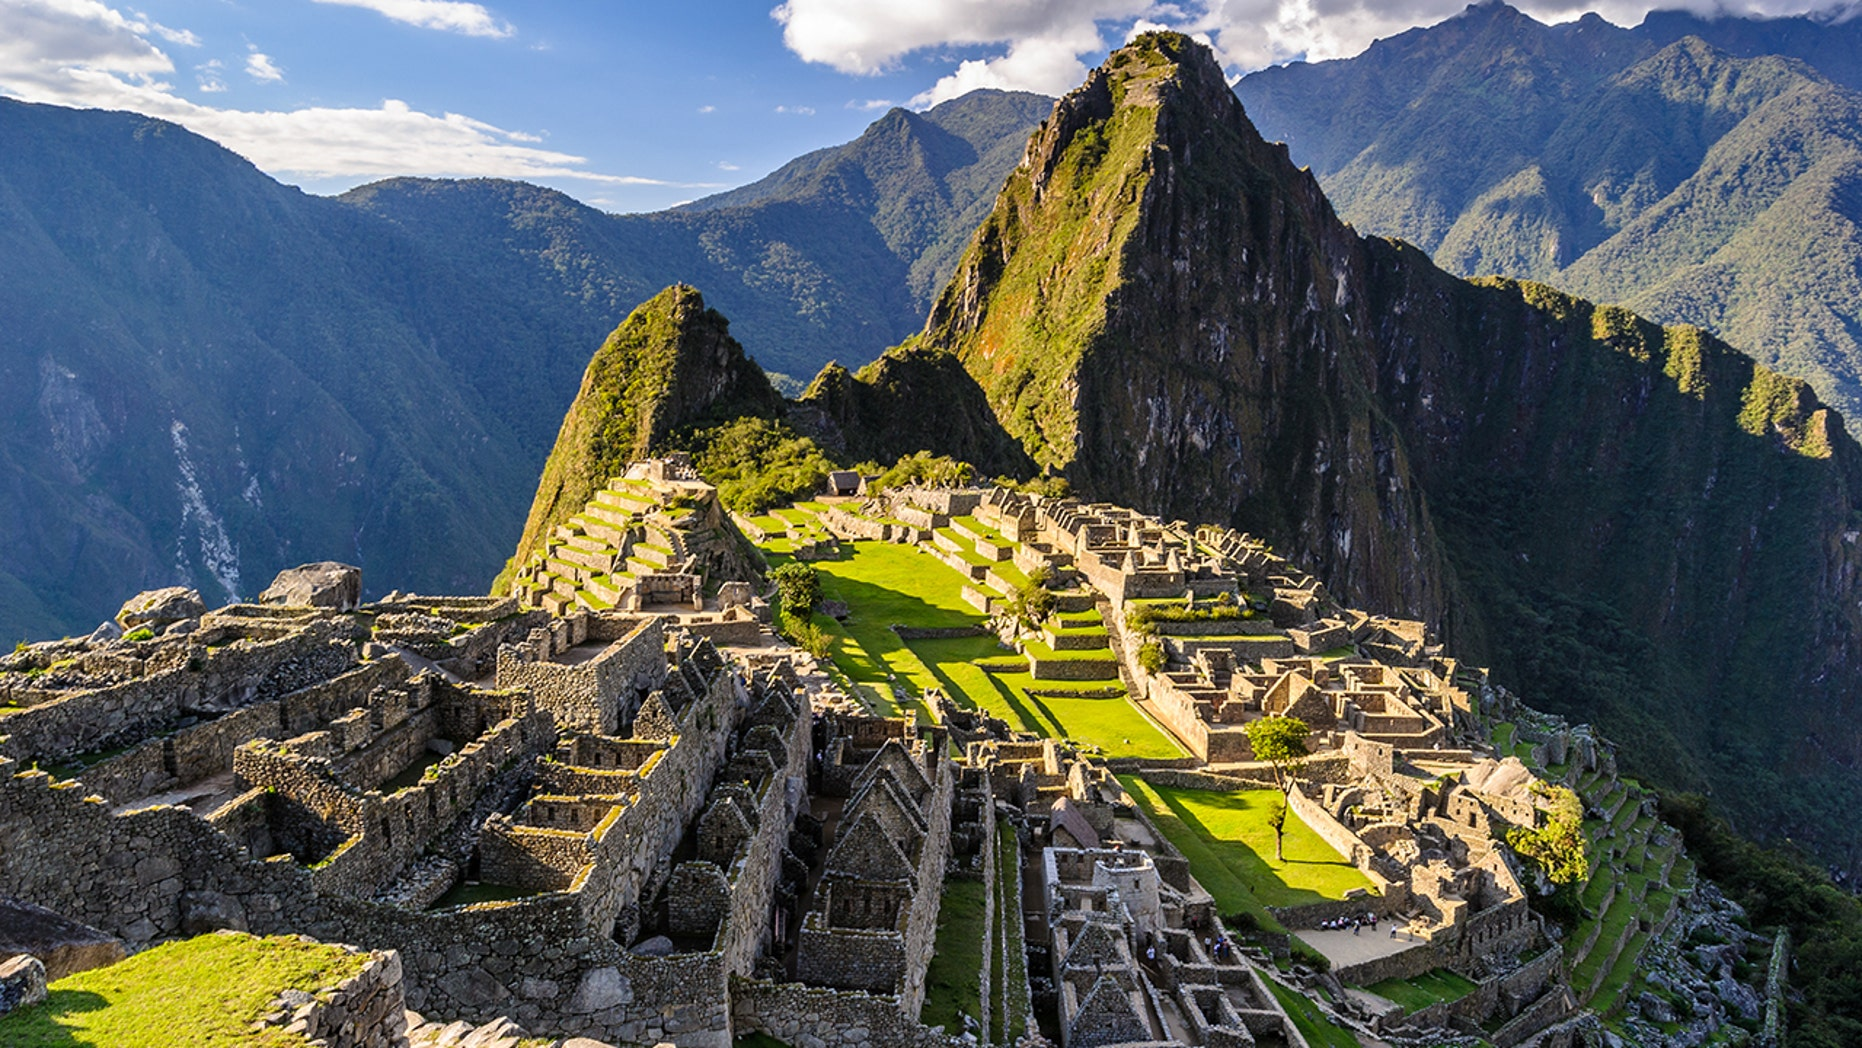 A group of young tourists were kicked out of Machu Picchu for mooning the ancient ruins.